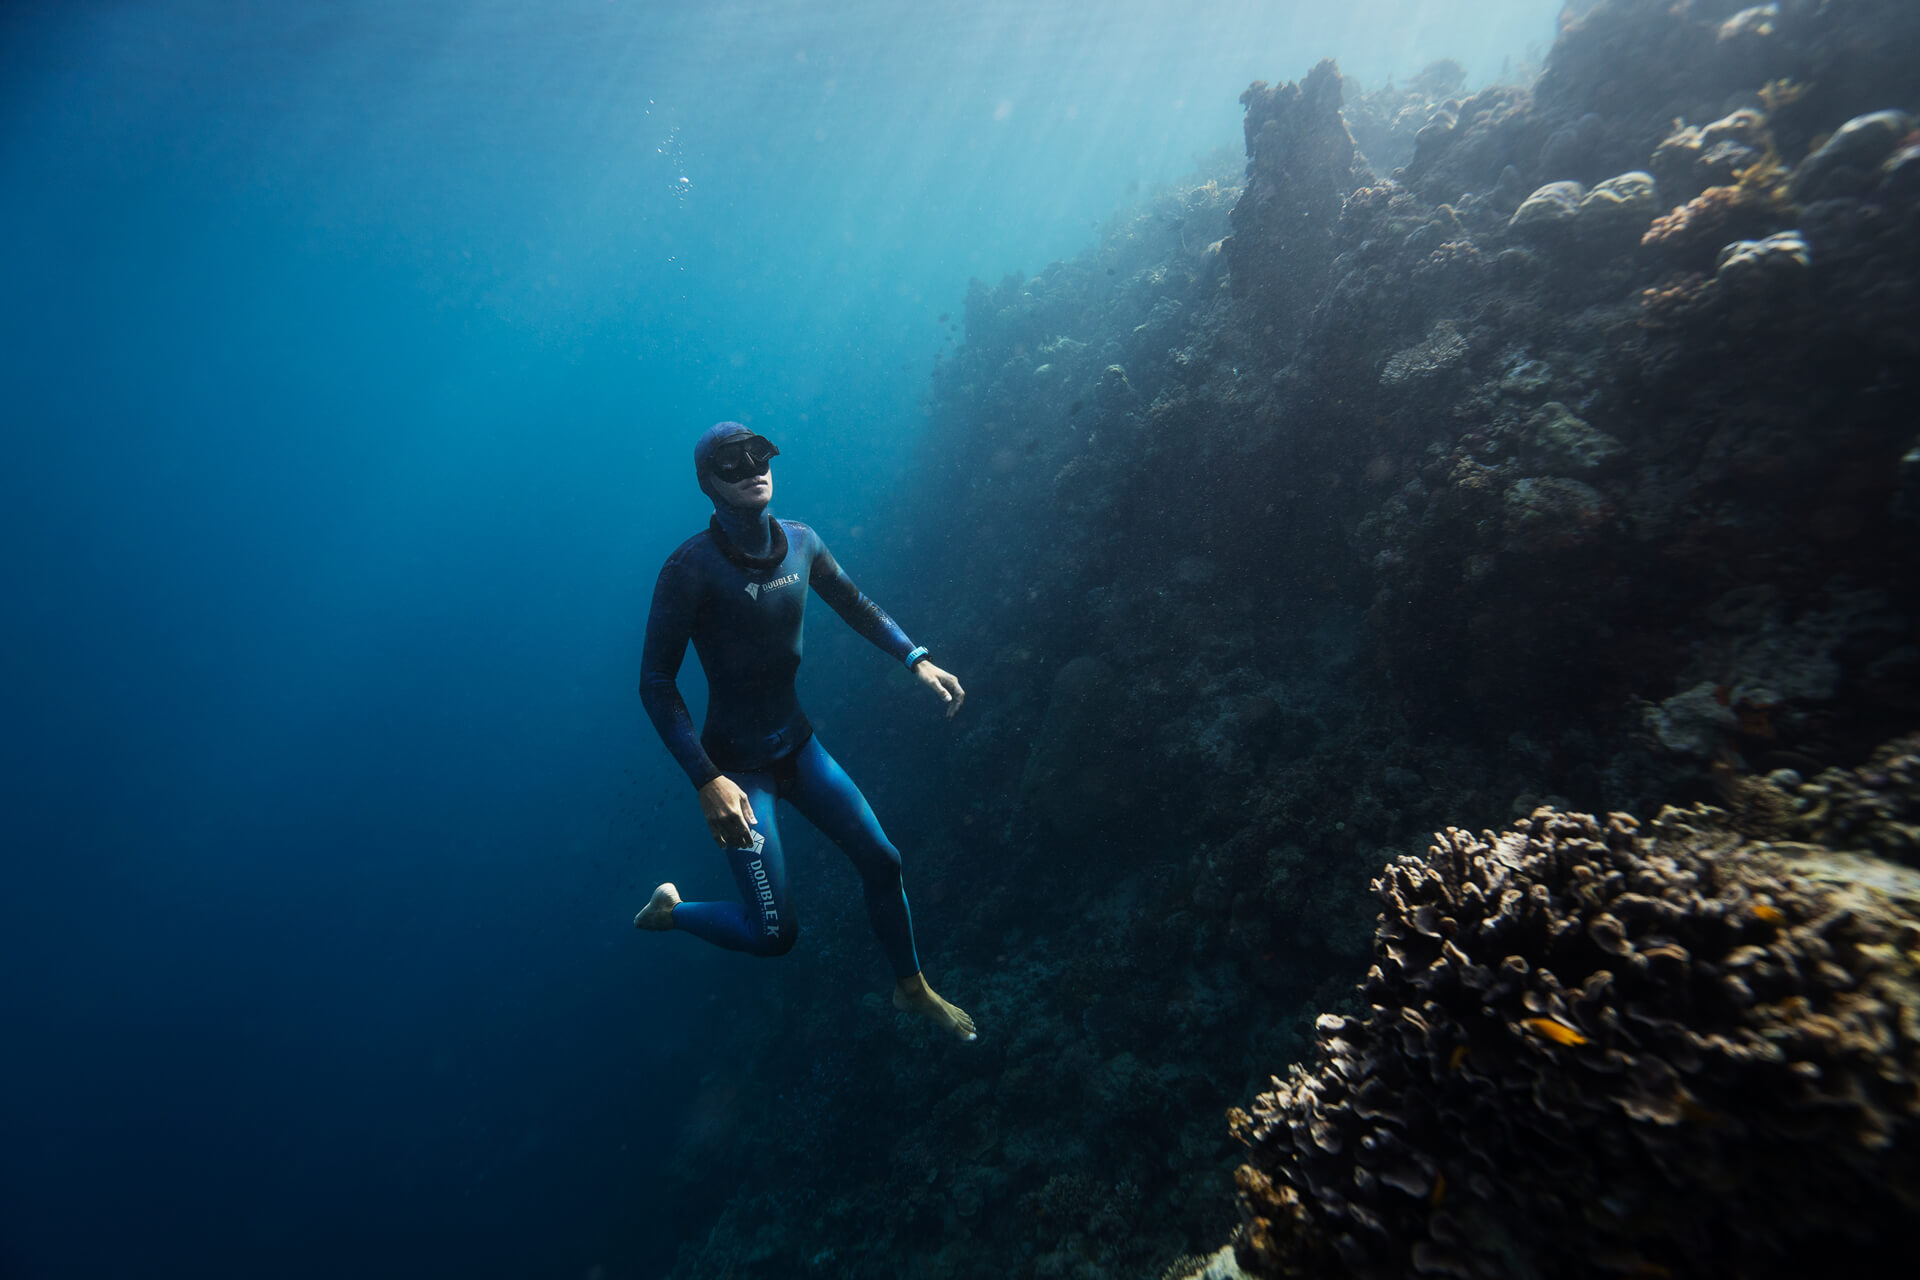 The freediving communities in Anilao, Cebu, and Panglao reveal the growing popularity of a sport that is as extreme as it is beautiful.